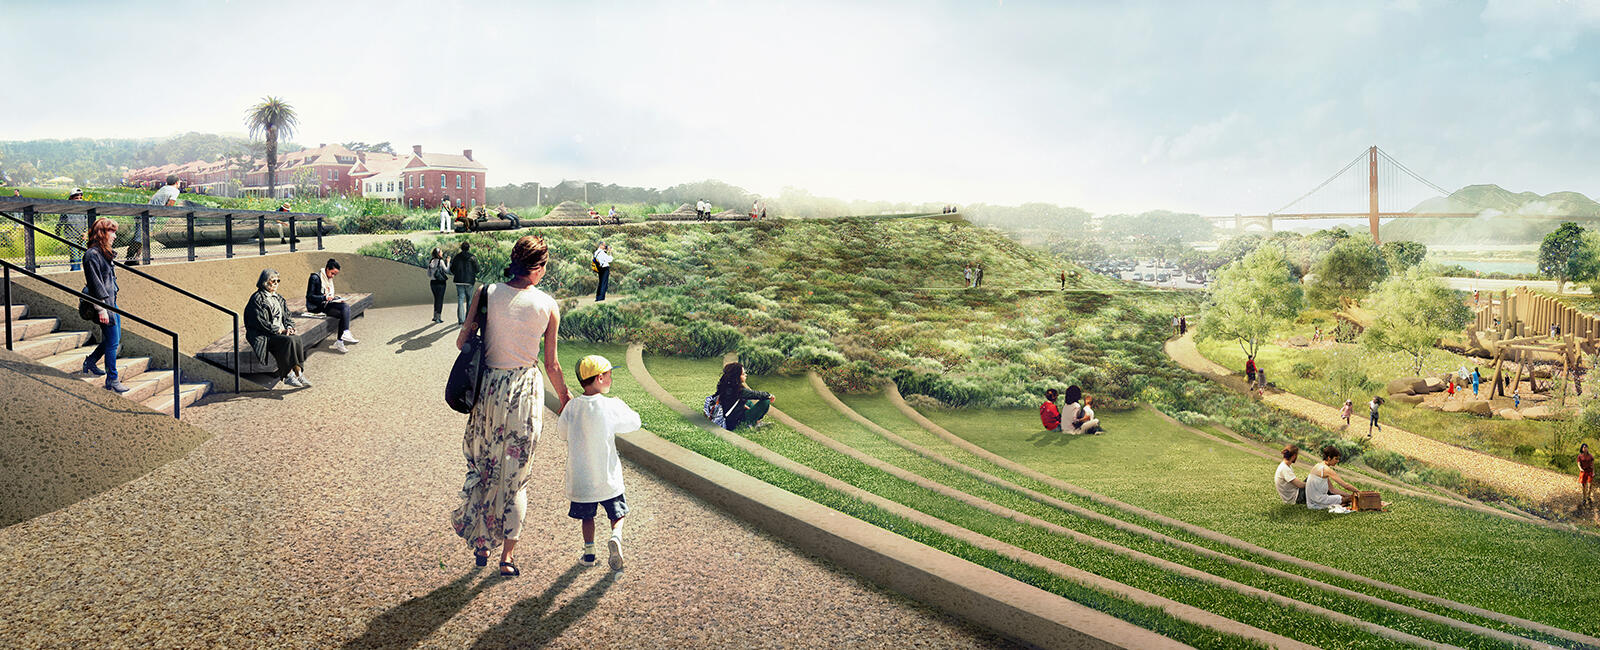 Rendering of steps and views at the Presidio Tunnel Tops